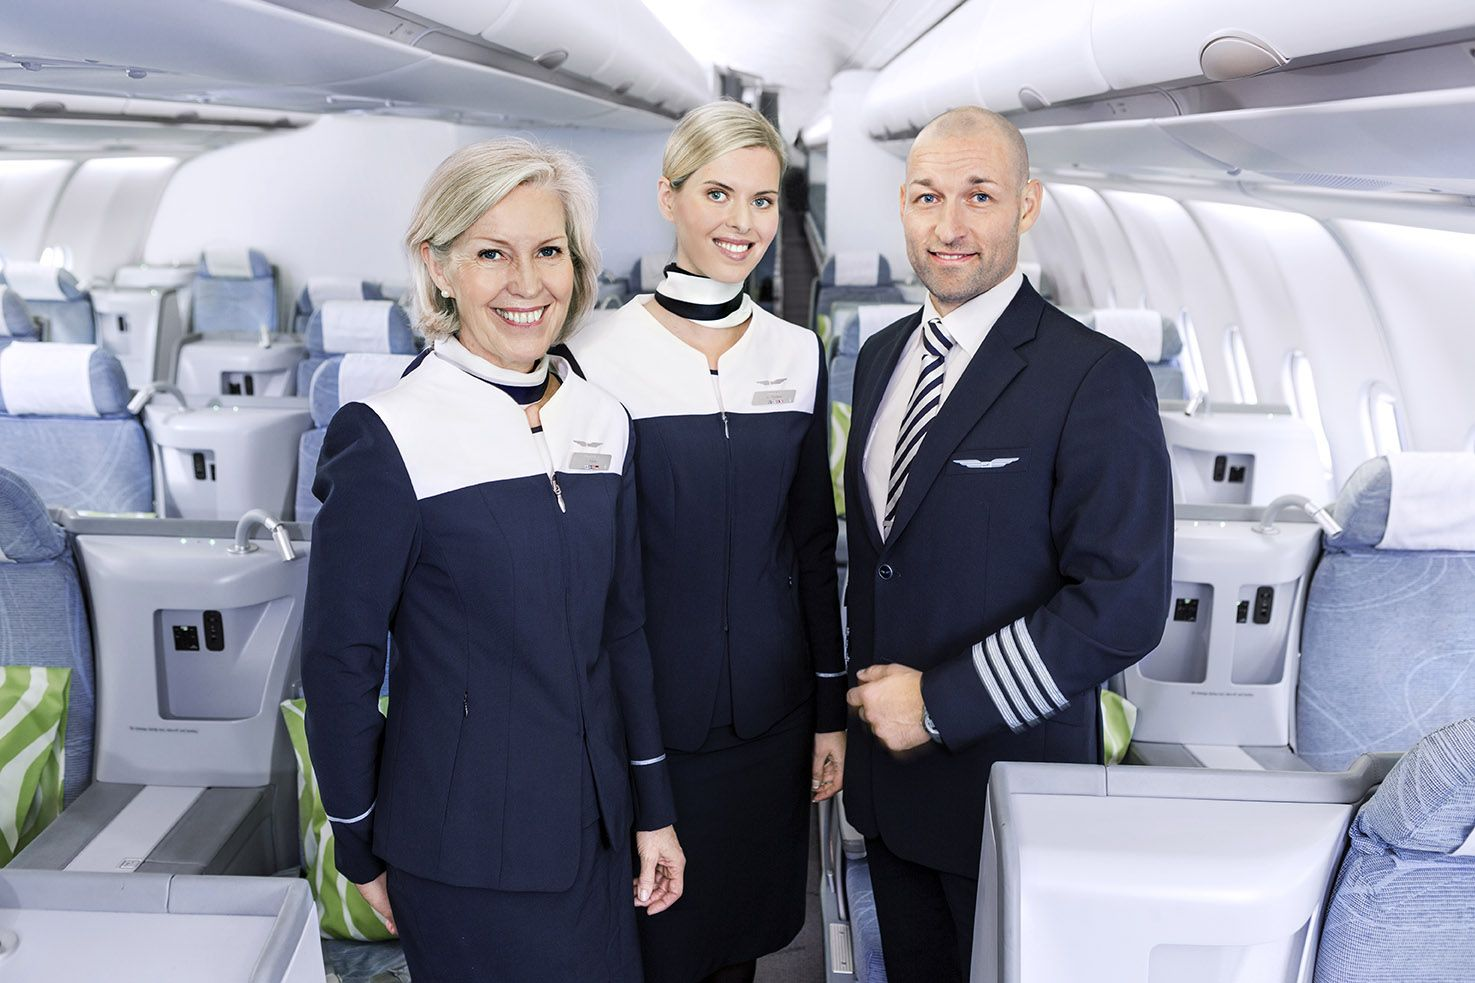 Cabin Crew take care of the safety on your flight. Cabin